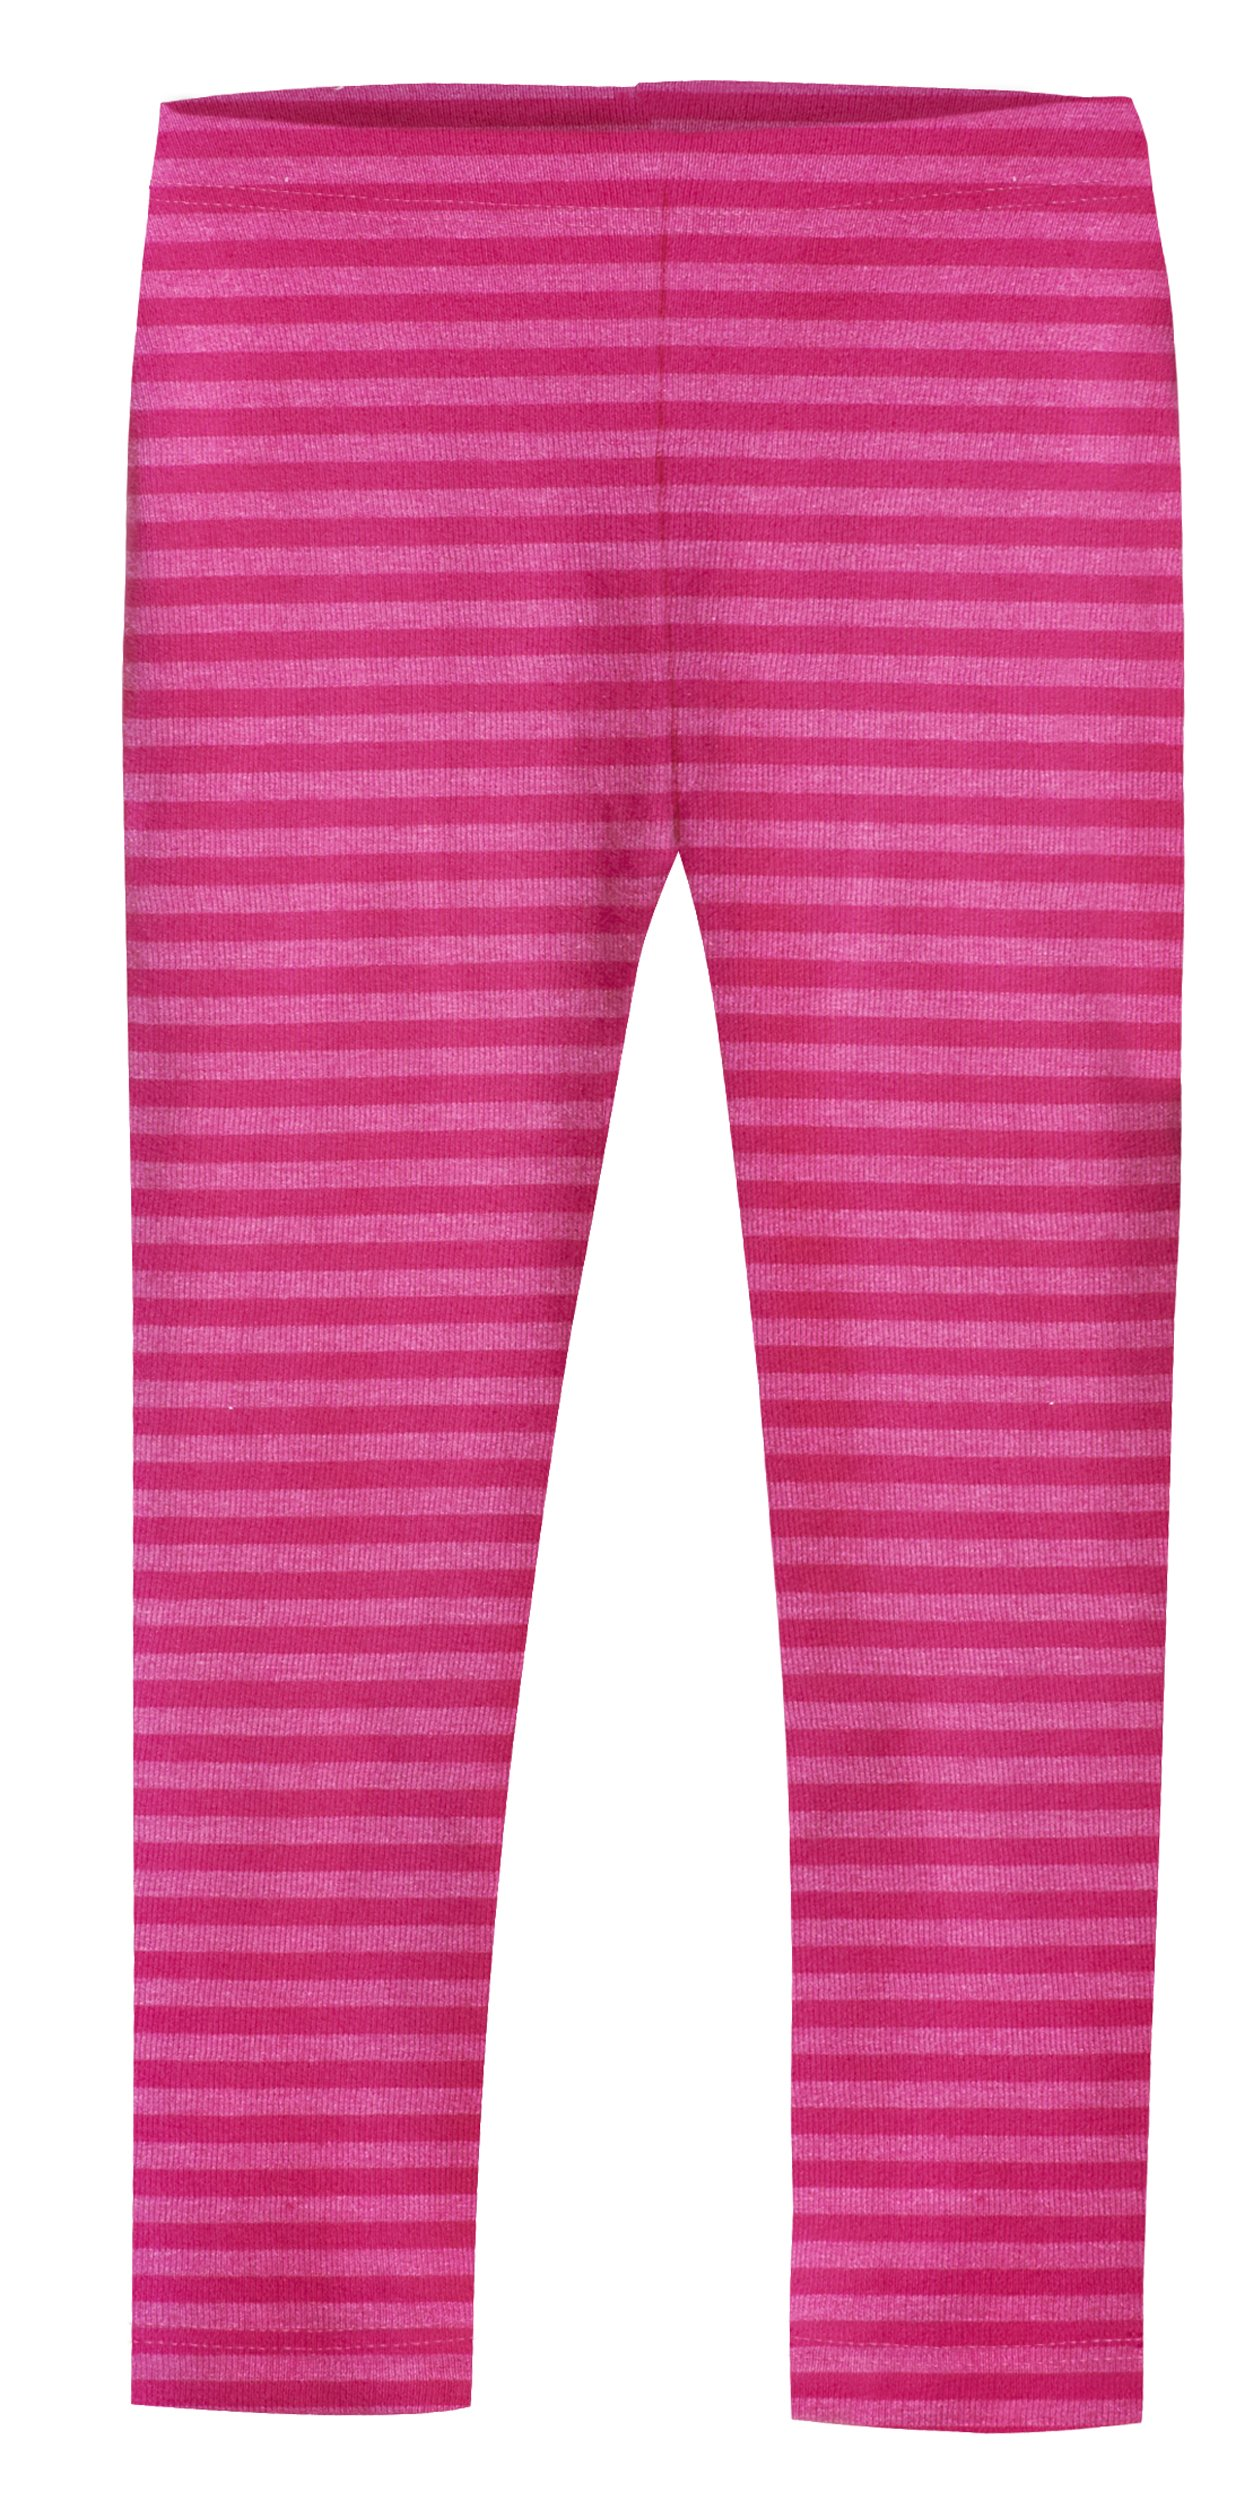 City Threads Girls' Leggings Cotton/Poly Blend for School Uniform Sports Coverage or Play Perfect for Sensitive Skin or SPD Sensory Friendly Clothing, Stripe Hot Pink, 5